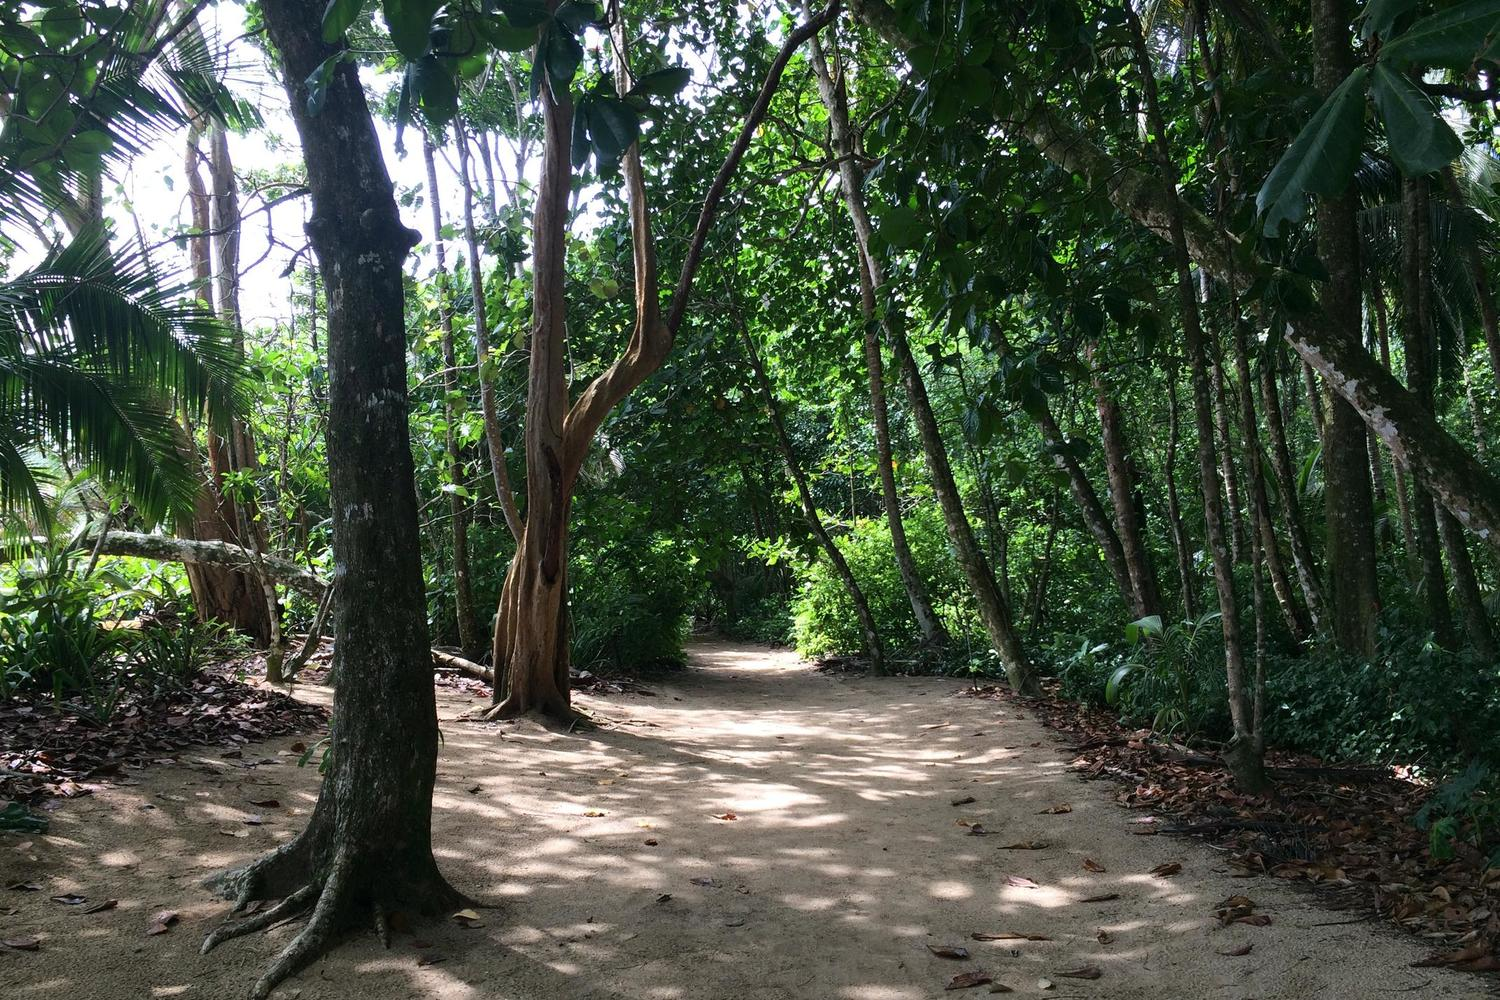 Walking the trails through Cahuita National Park